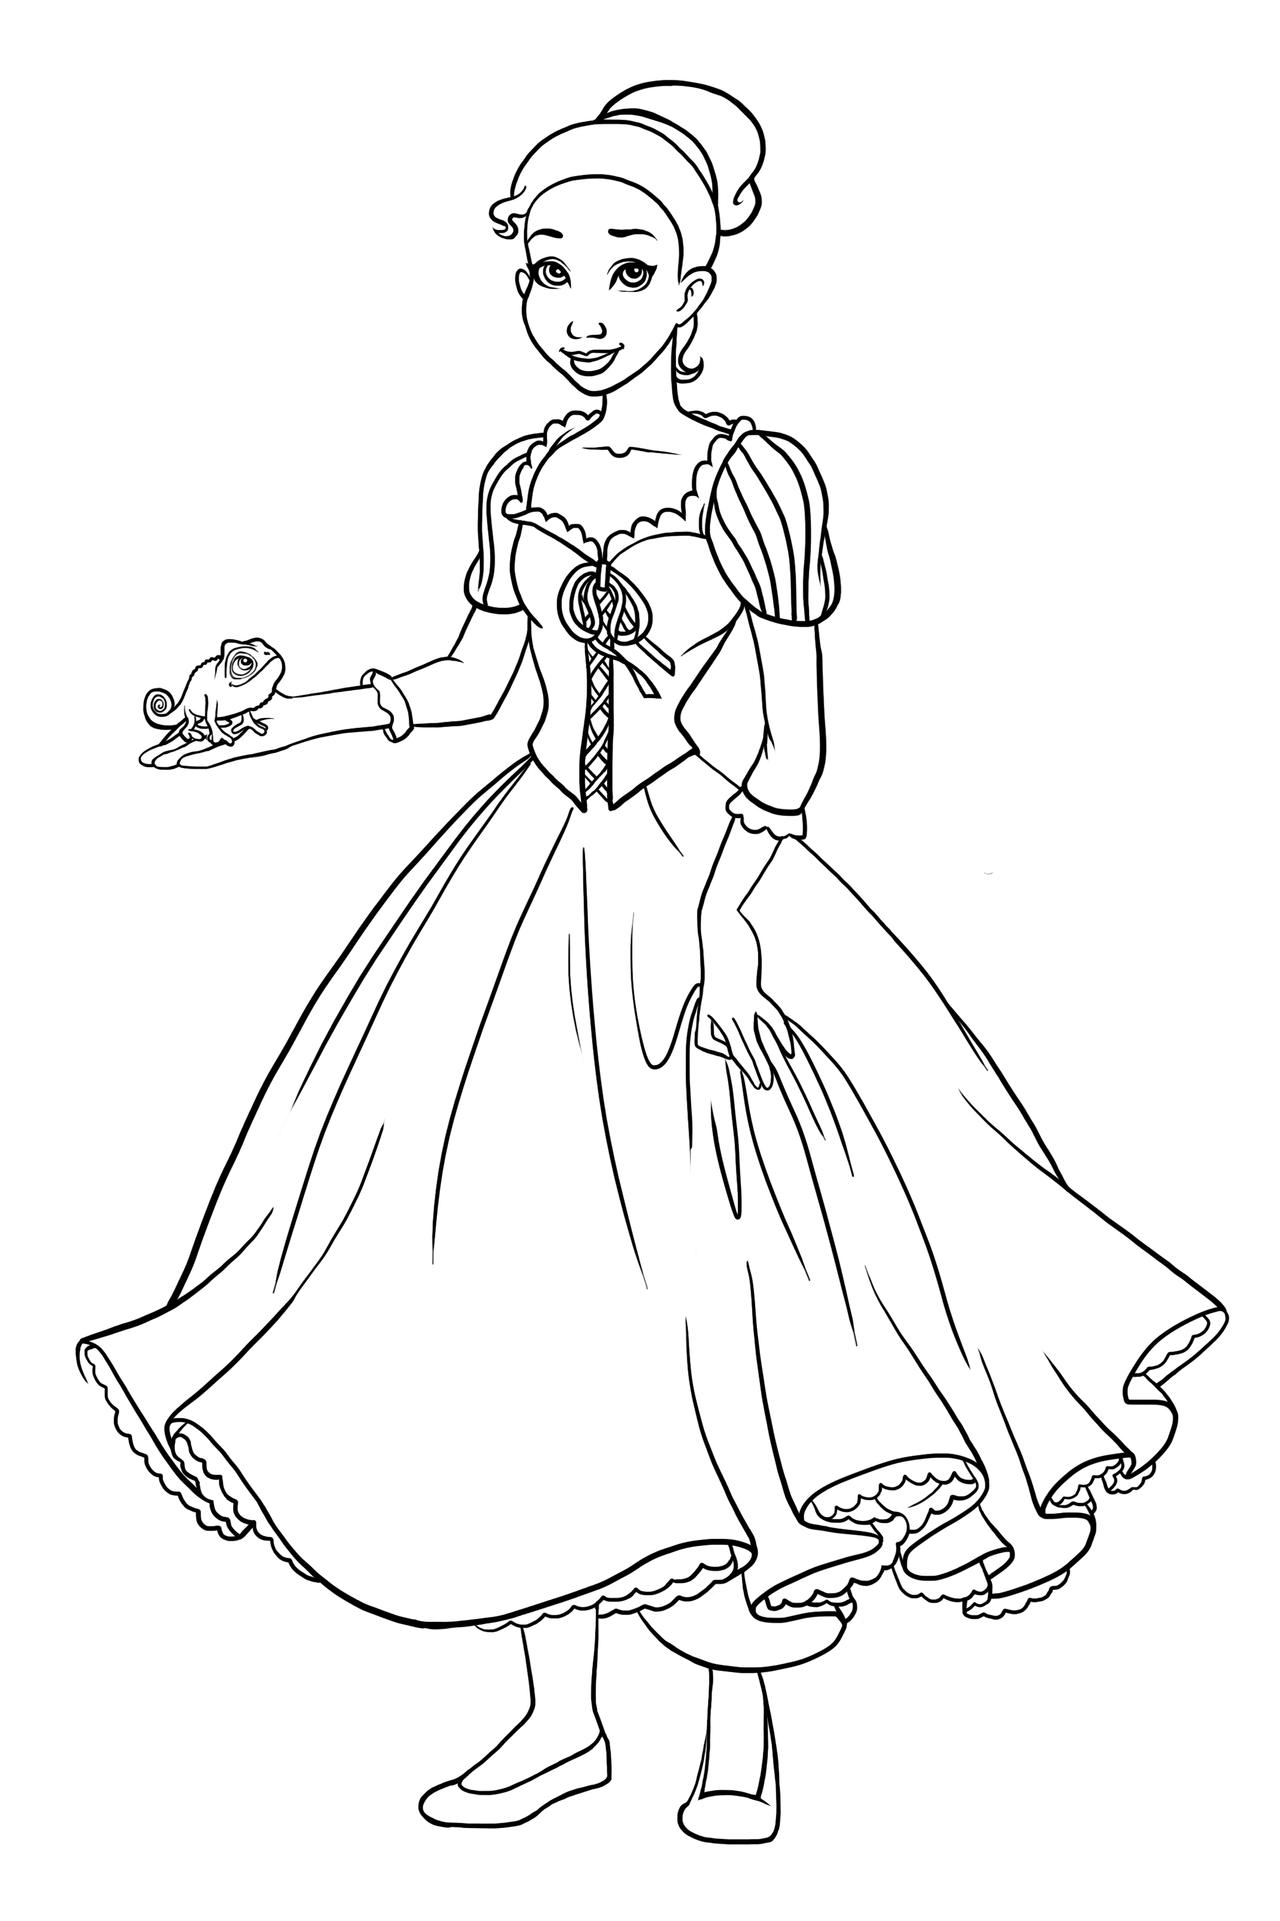 Rapunzel Lineart : Tiana as rapunzel i lineart by paola tosca on deviantart